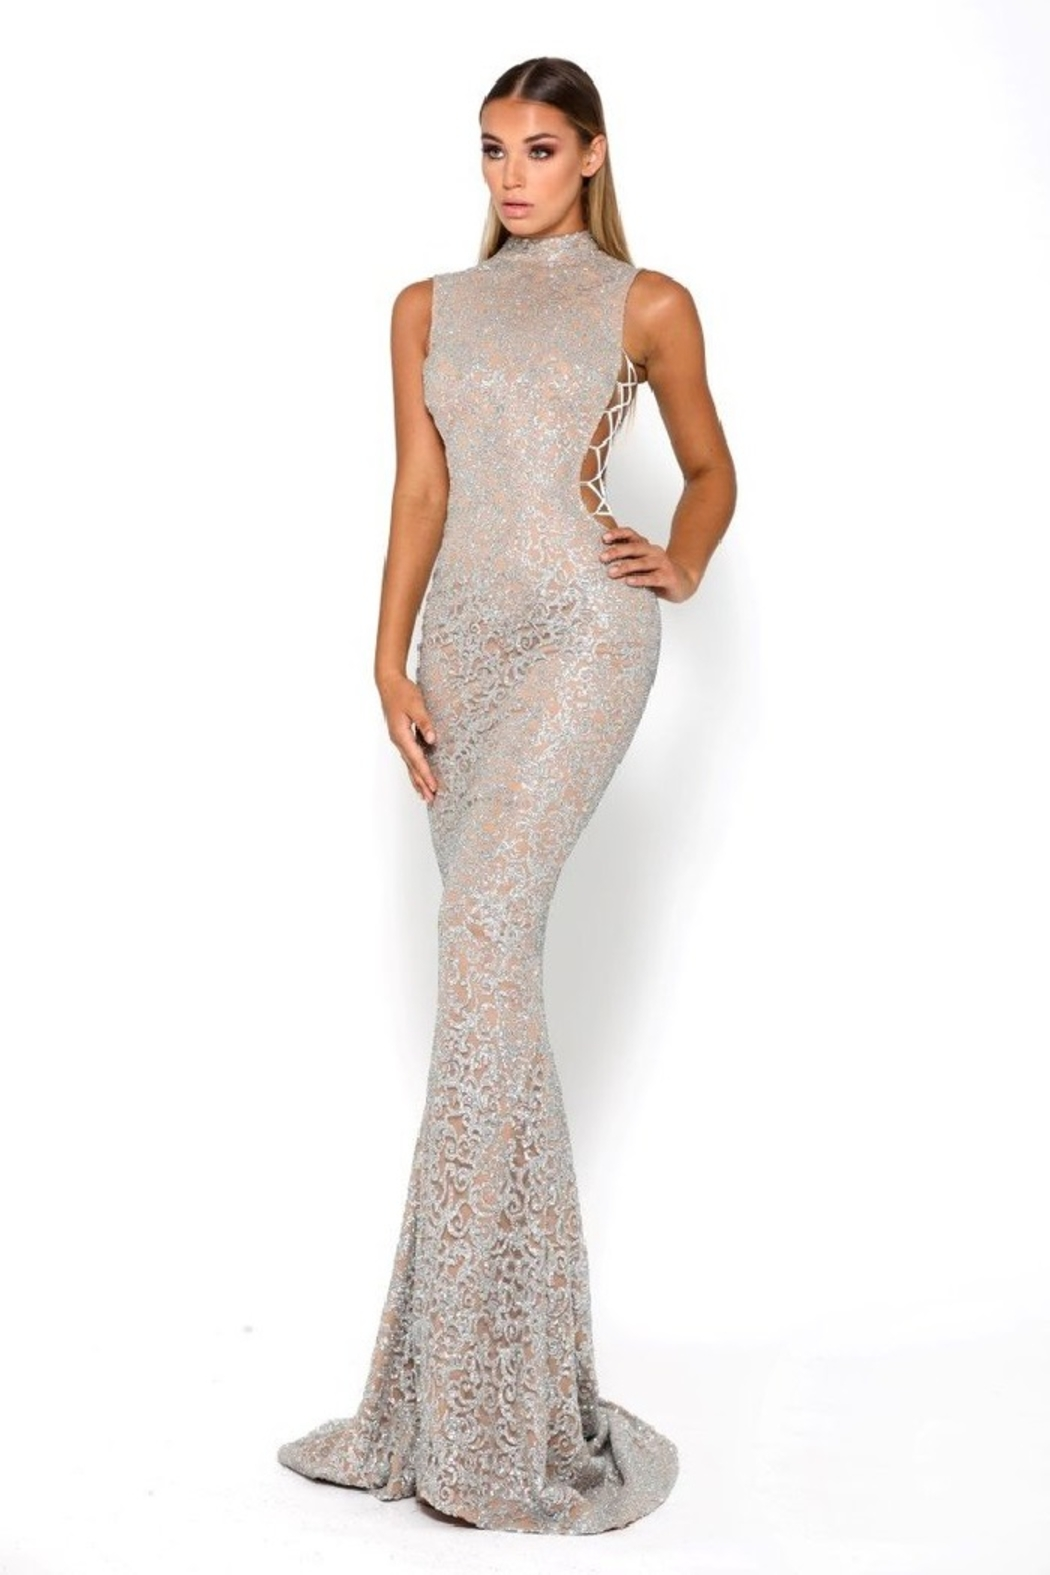 PORTIA AND SCARLETT Gold Glitter Fit & Flare Long Formal Dress - Main Image